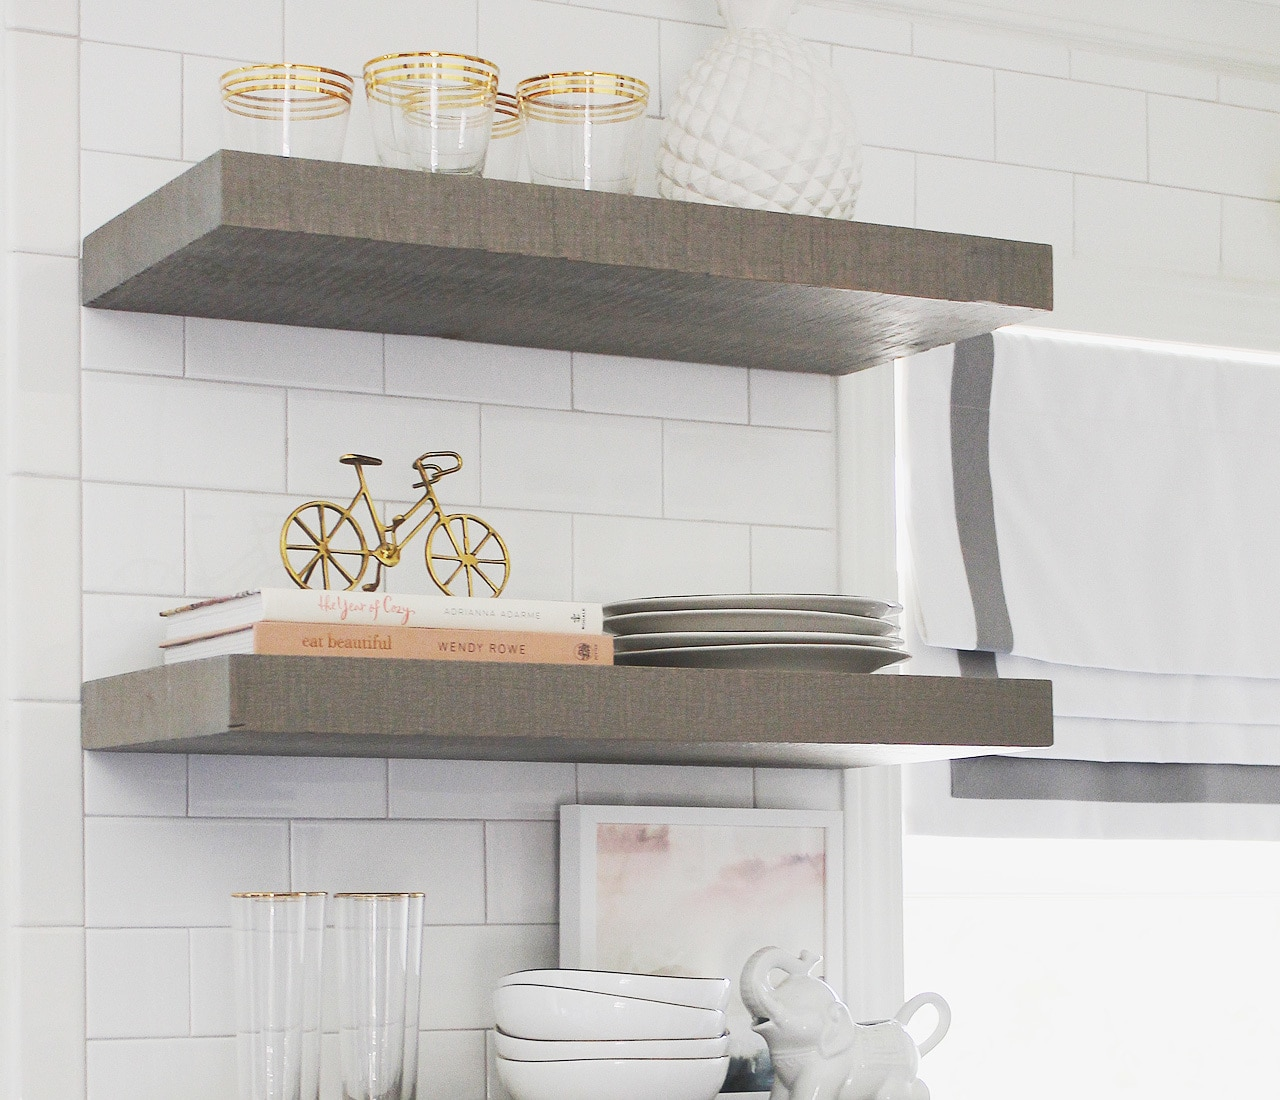 floating shelf bracket fits inch shelves gray kitchen light deep brackets easily install with our steel ture bunnings rustic wall pottery barn closet shelving system simple diy